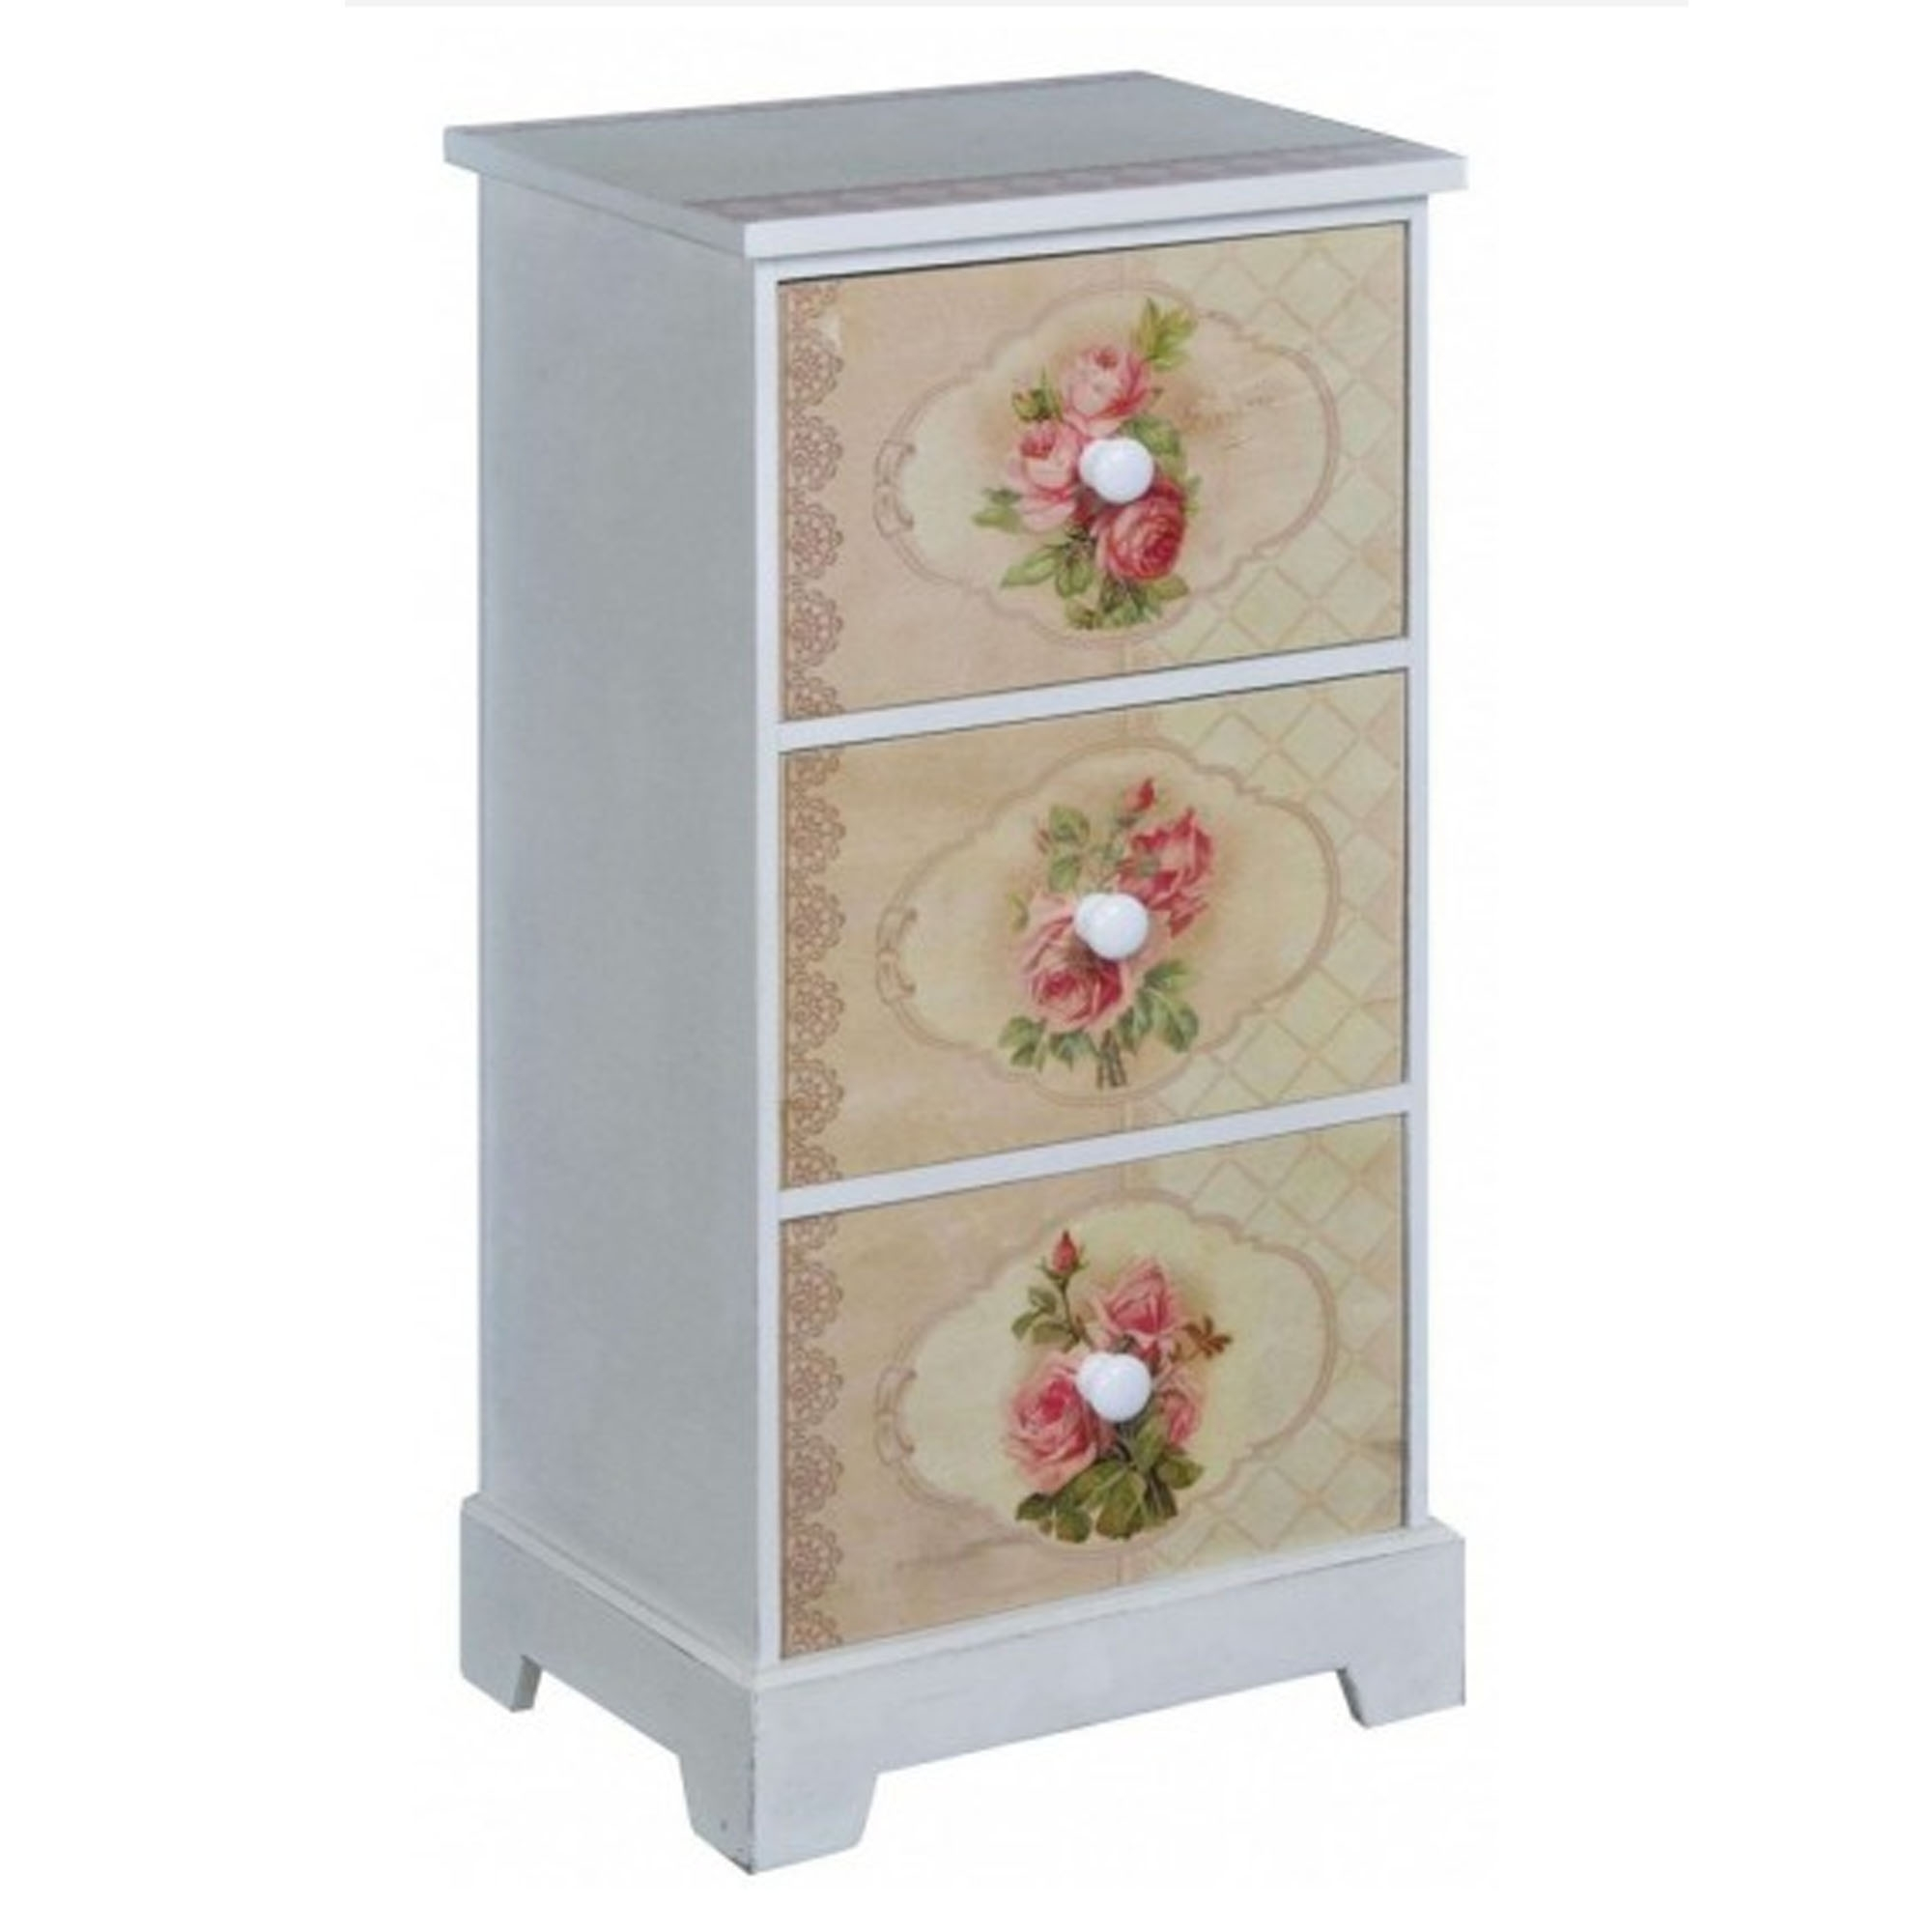 vintage shabby chic chest of drawers | shabby chic furniture